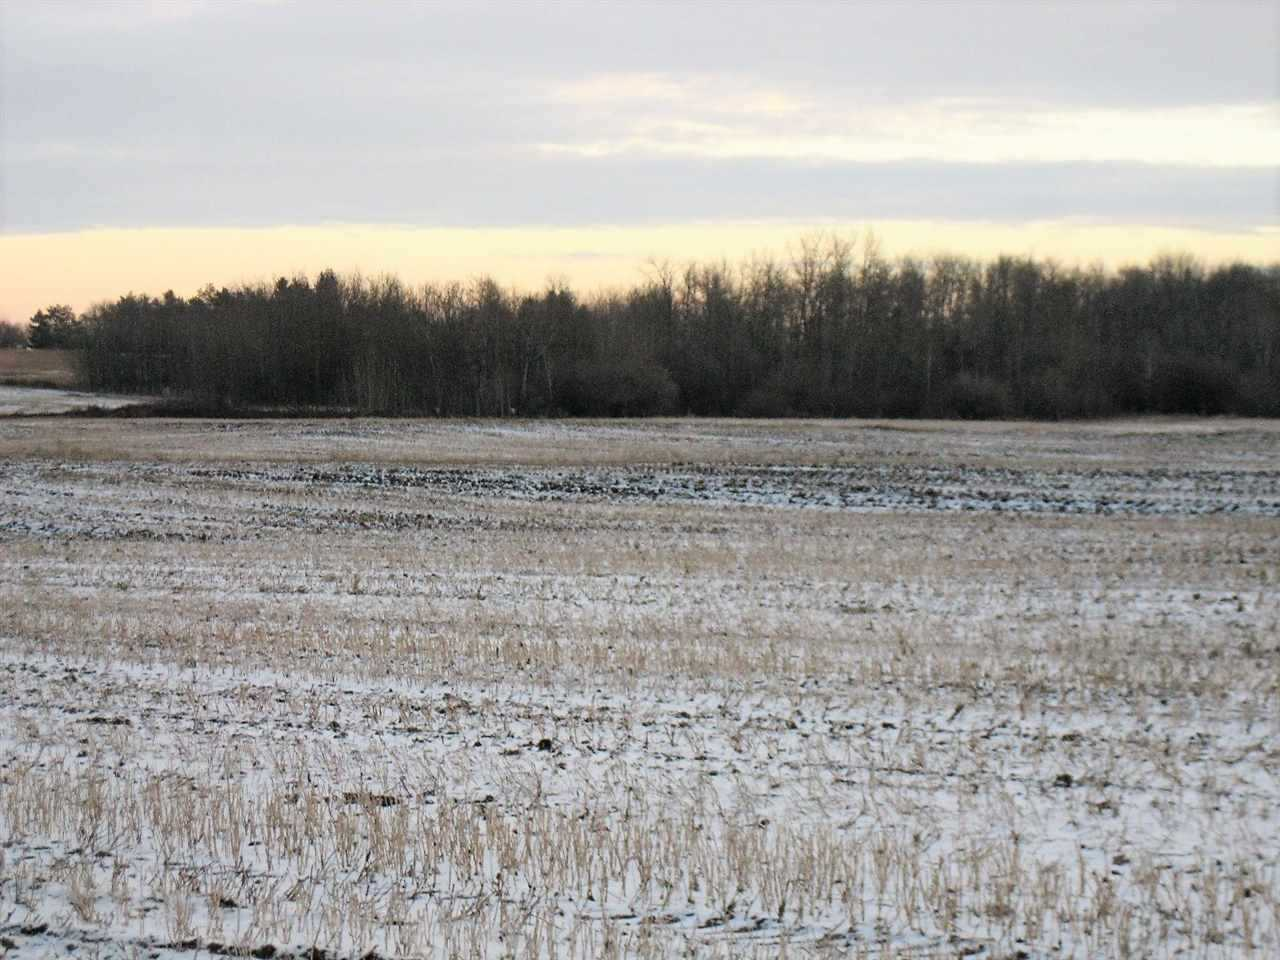 Main Photo: 57202 Hwy 44: Rural Sturgeon County Rural Land/Vacant Lot for sale : MLS®# E4109772